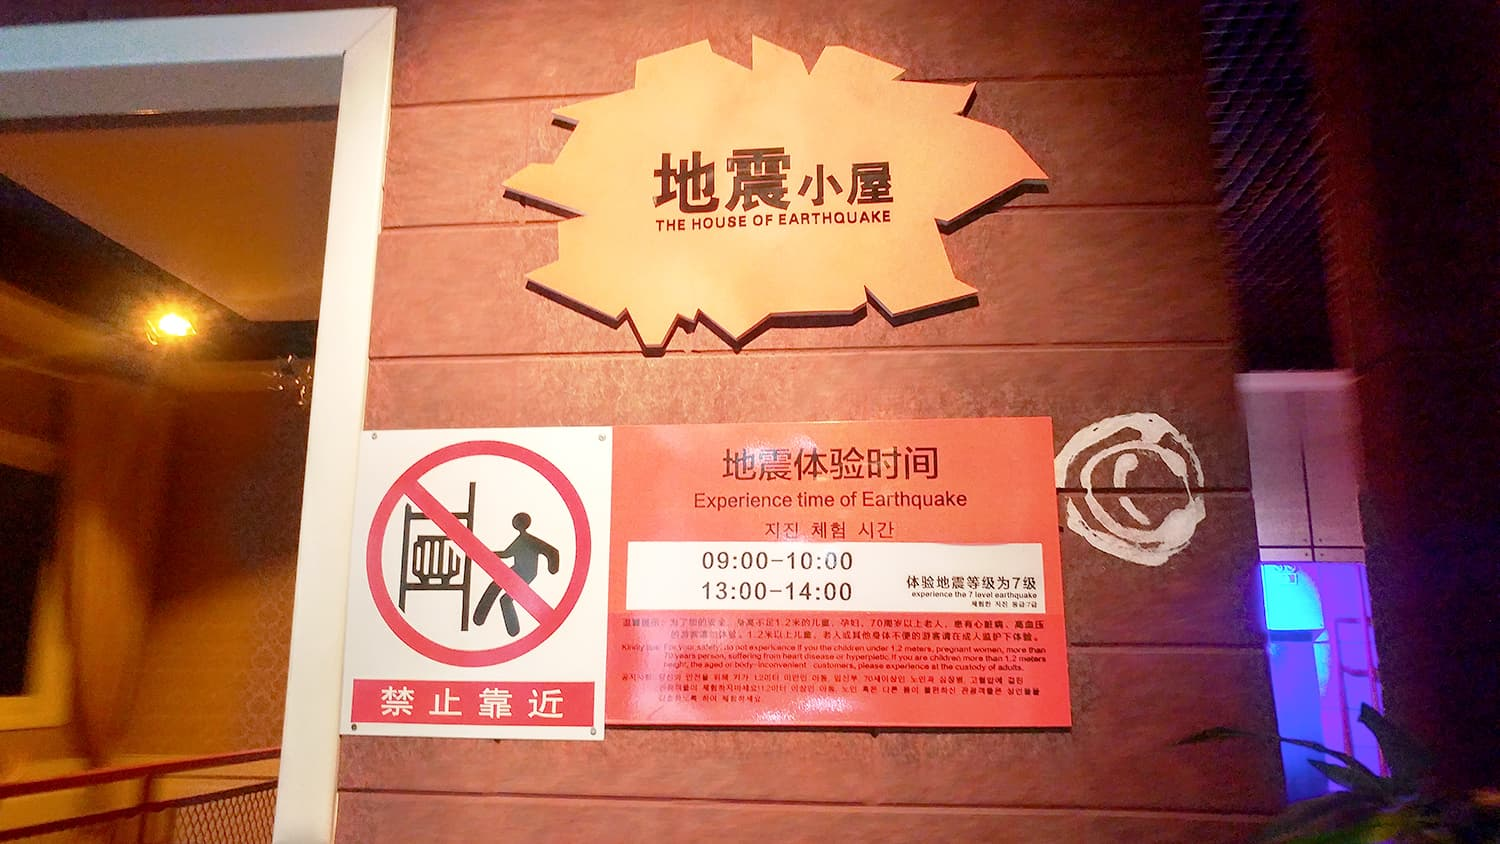 Experienced a Level 7 earthquake at the Weihai Air Defence Education Museum.